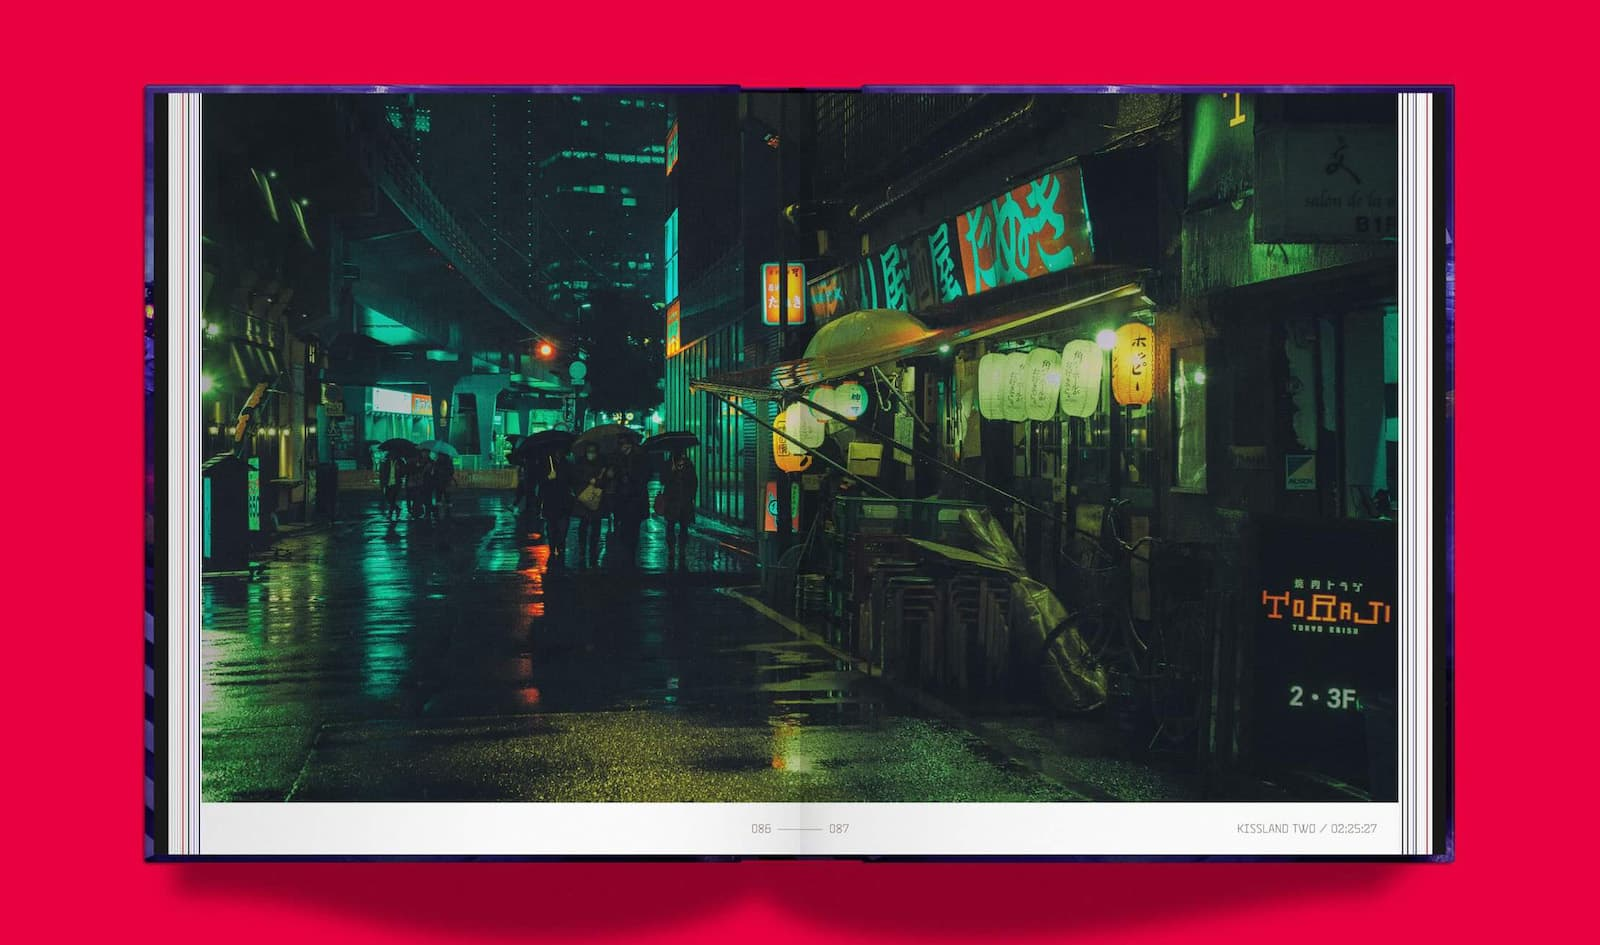 Liam Wong - To:ky:oo - Street Photography Design